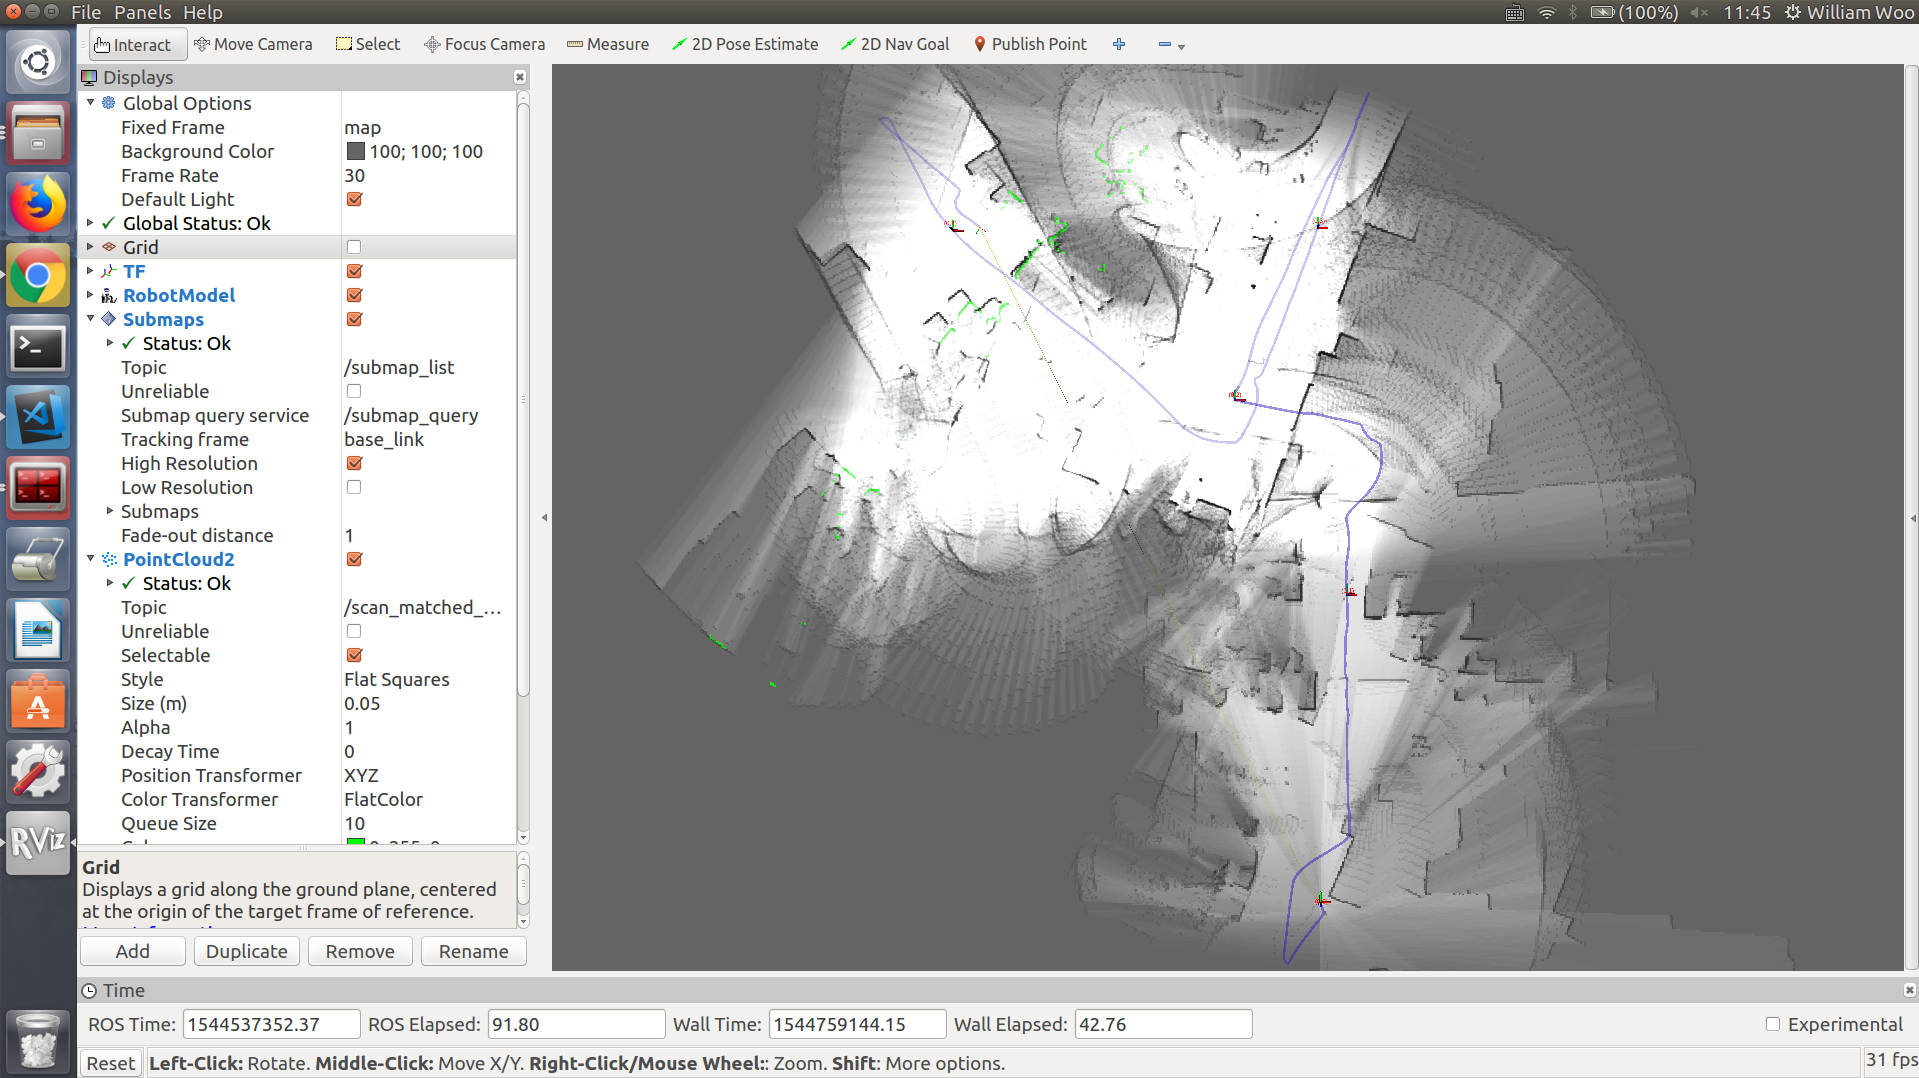 2D pure localization: no matched laser scan showing · Issue